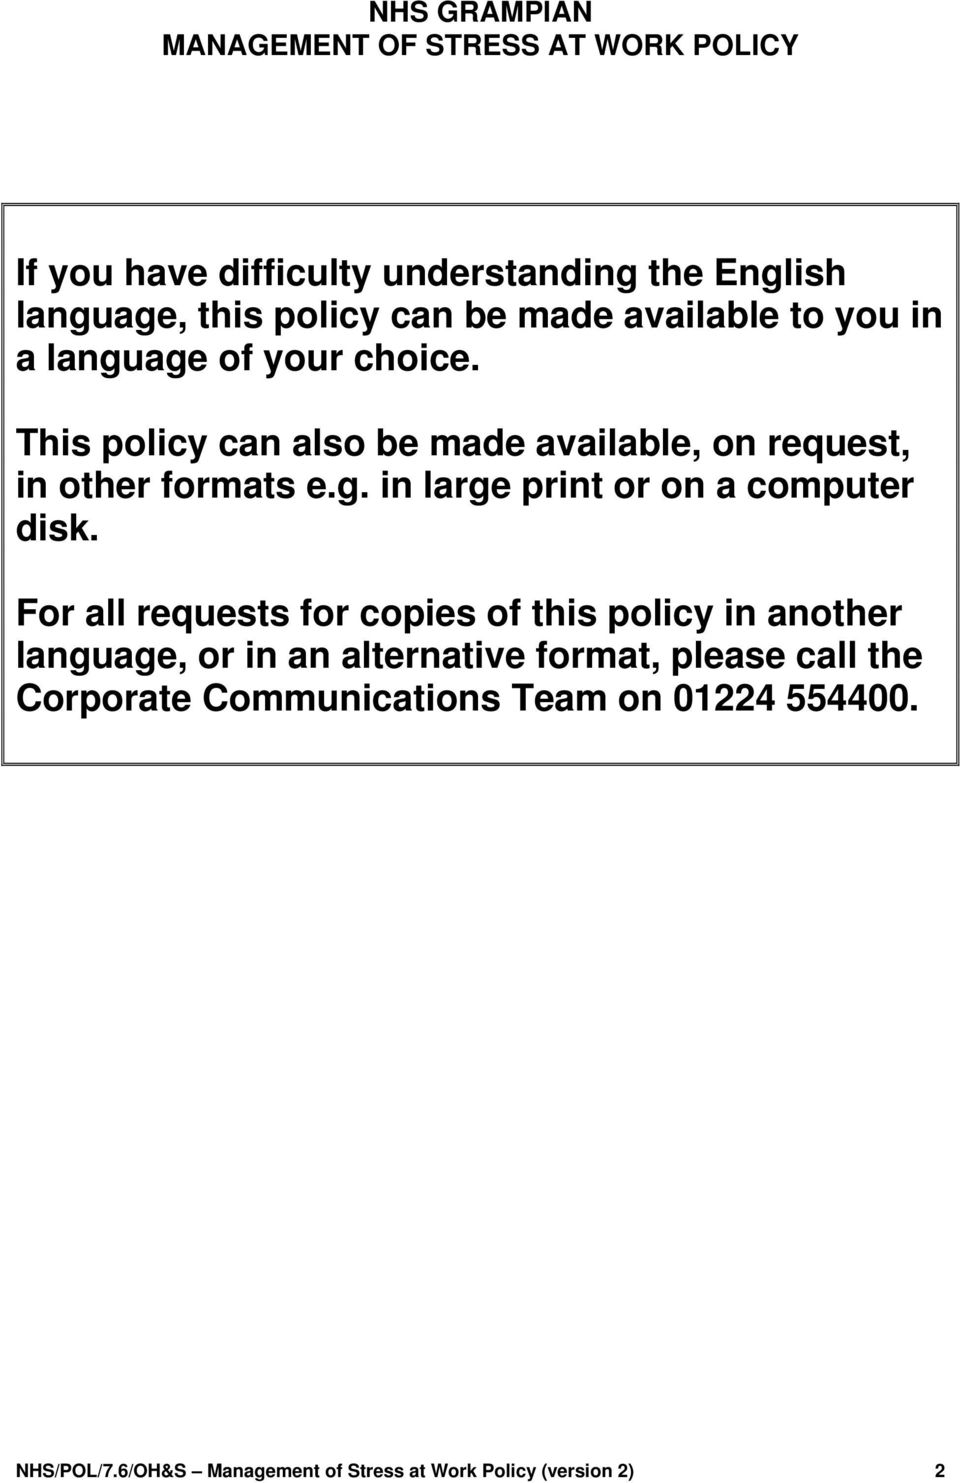 For all requests for copies of this policy in another language, or in an alternative format, please call the Corporate